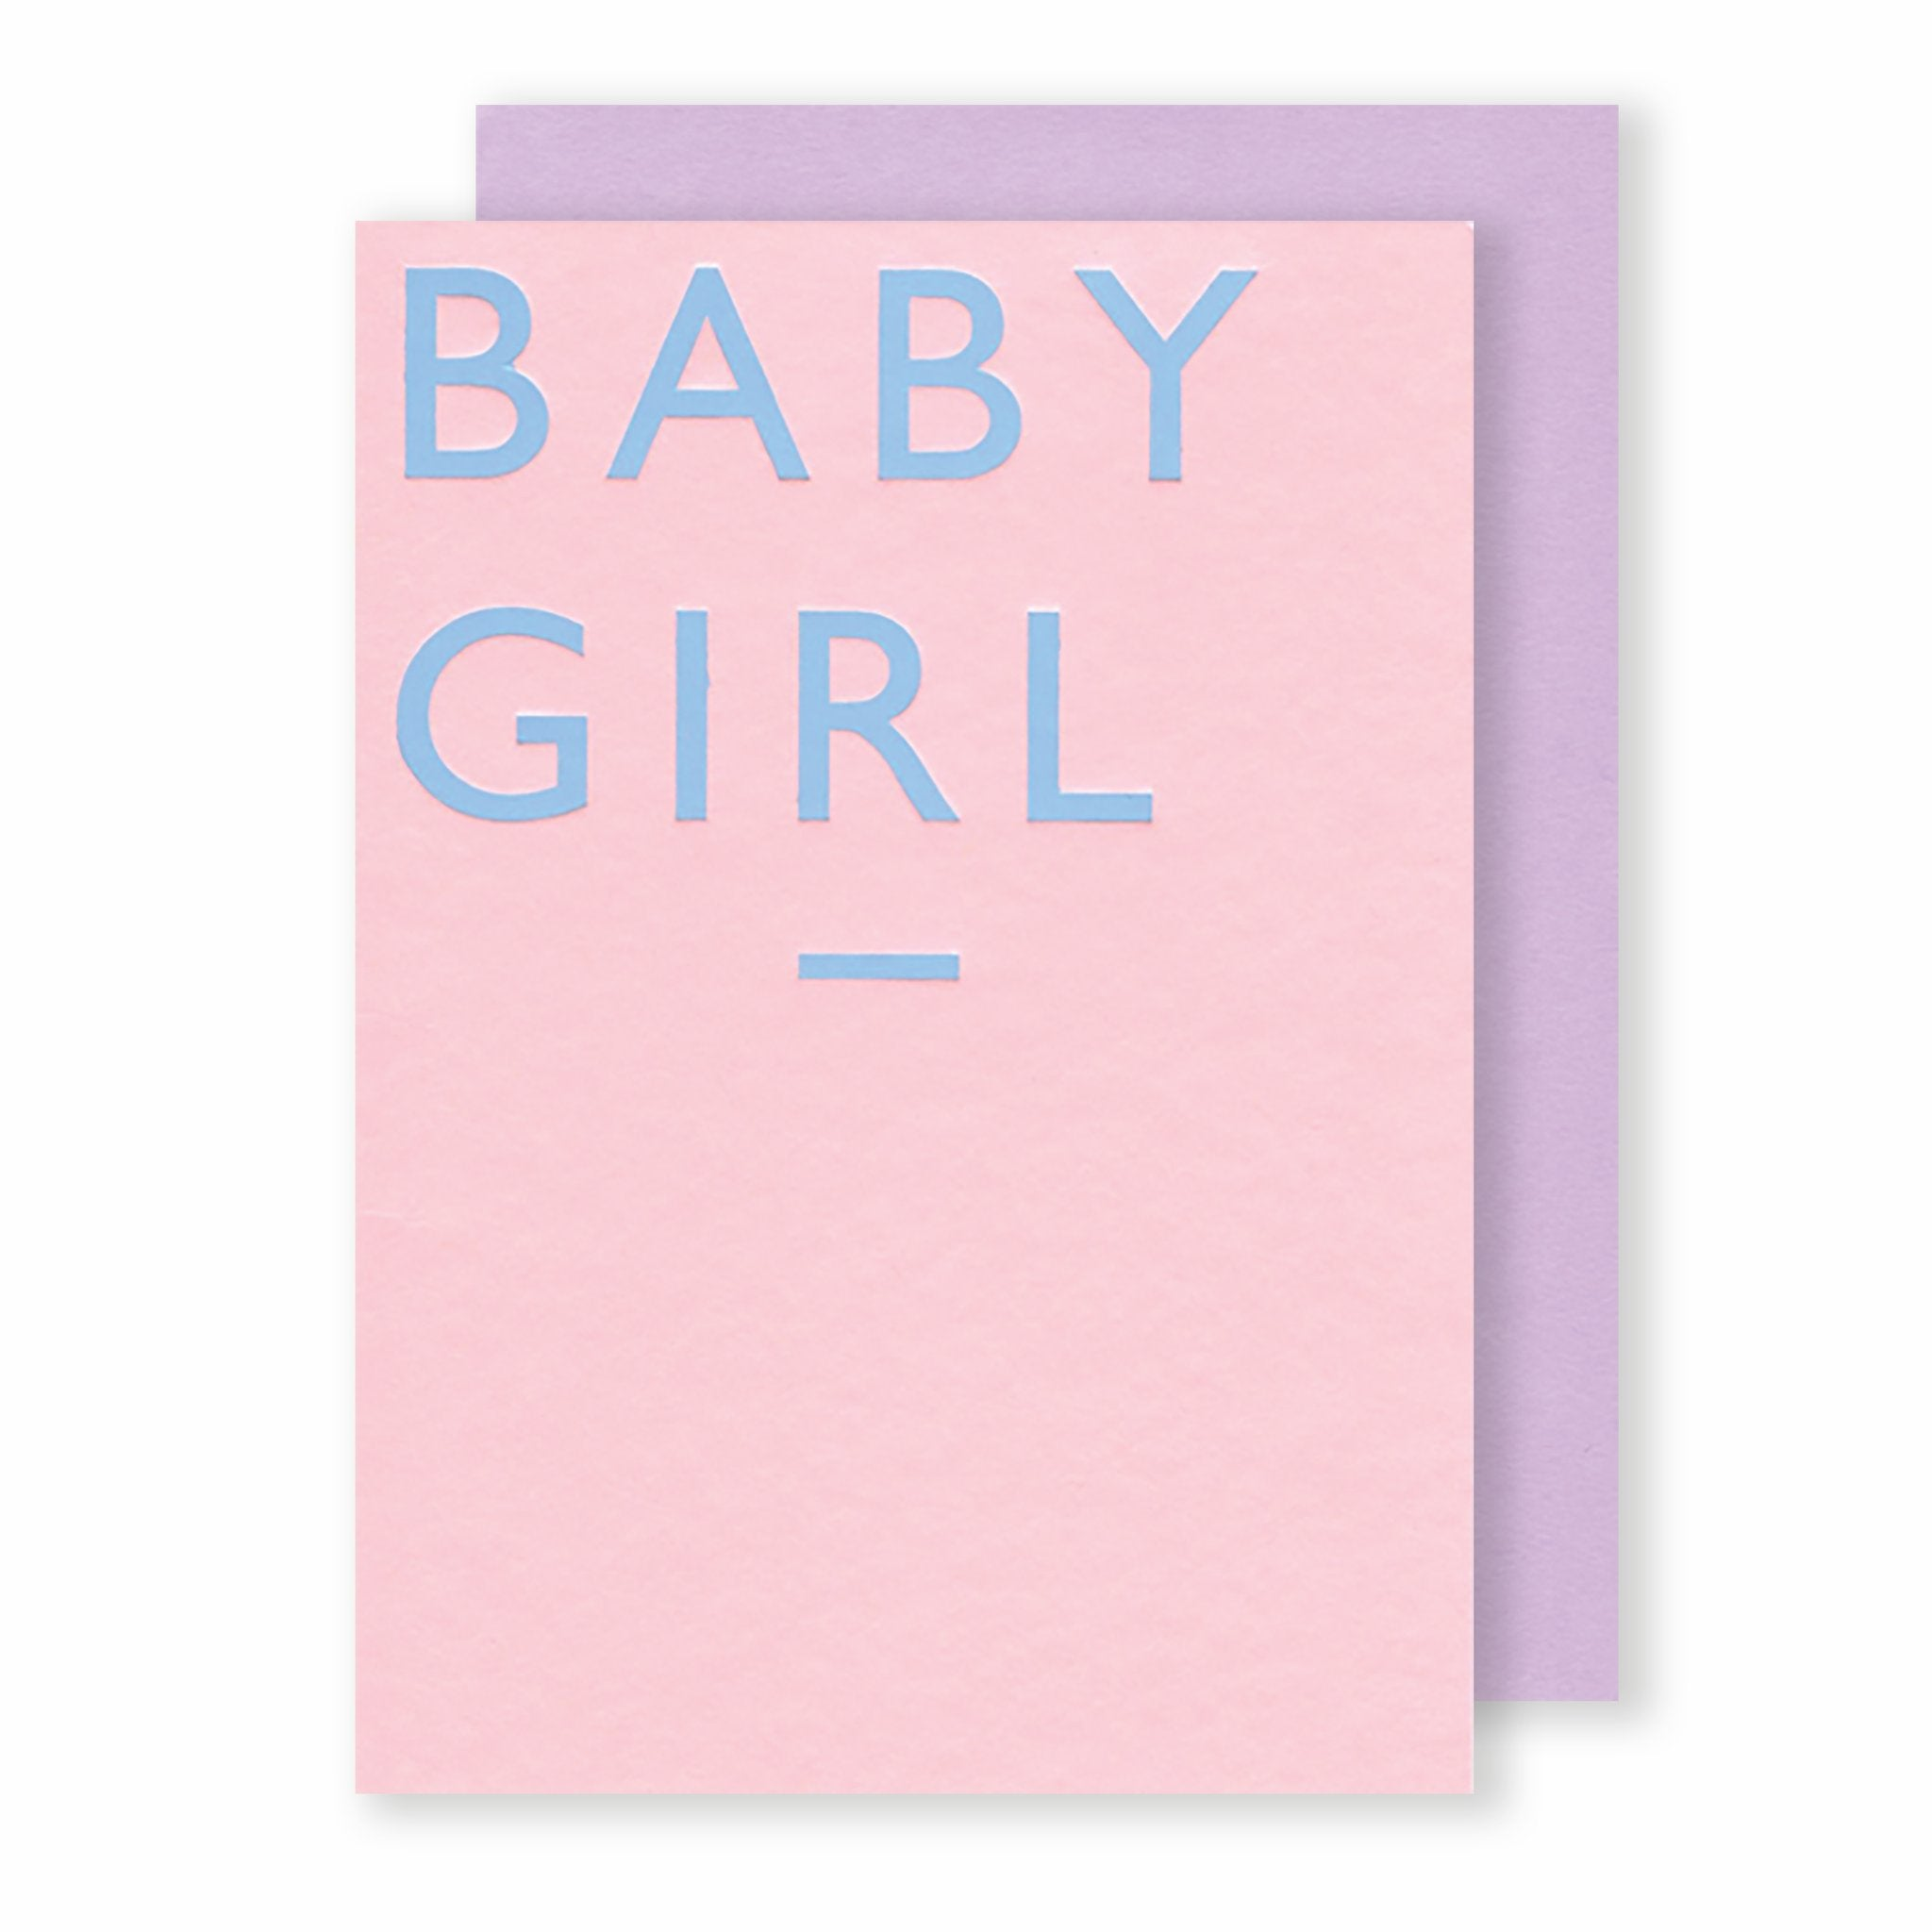 'Baby Girl' - Card - Five And Dime